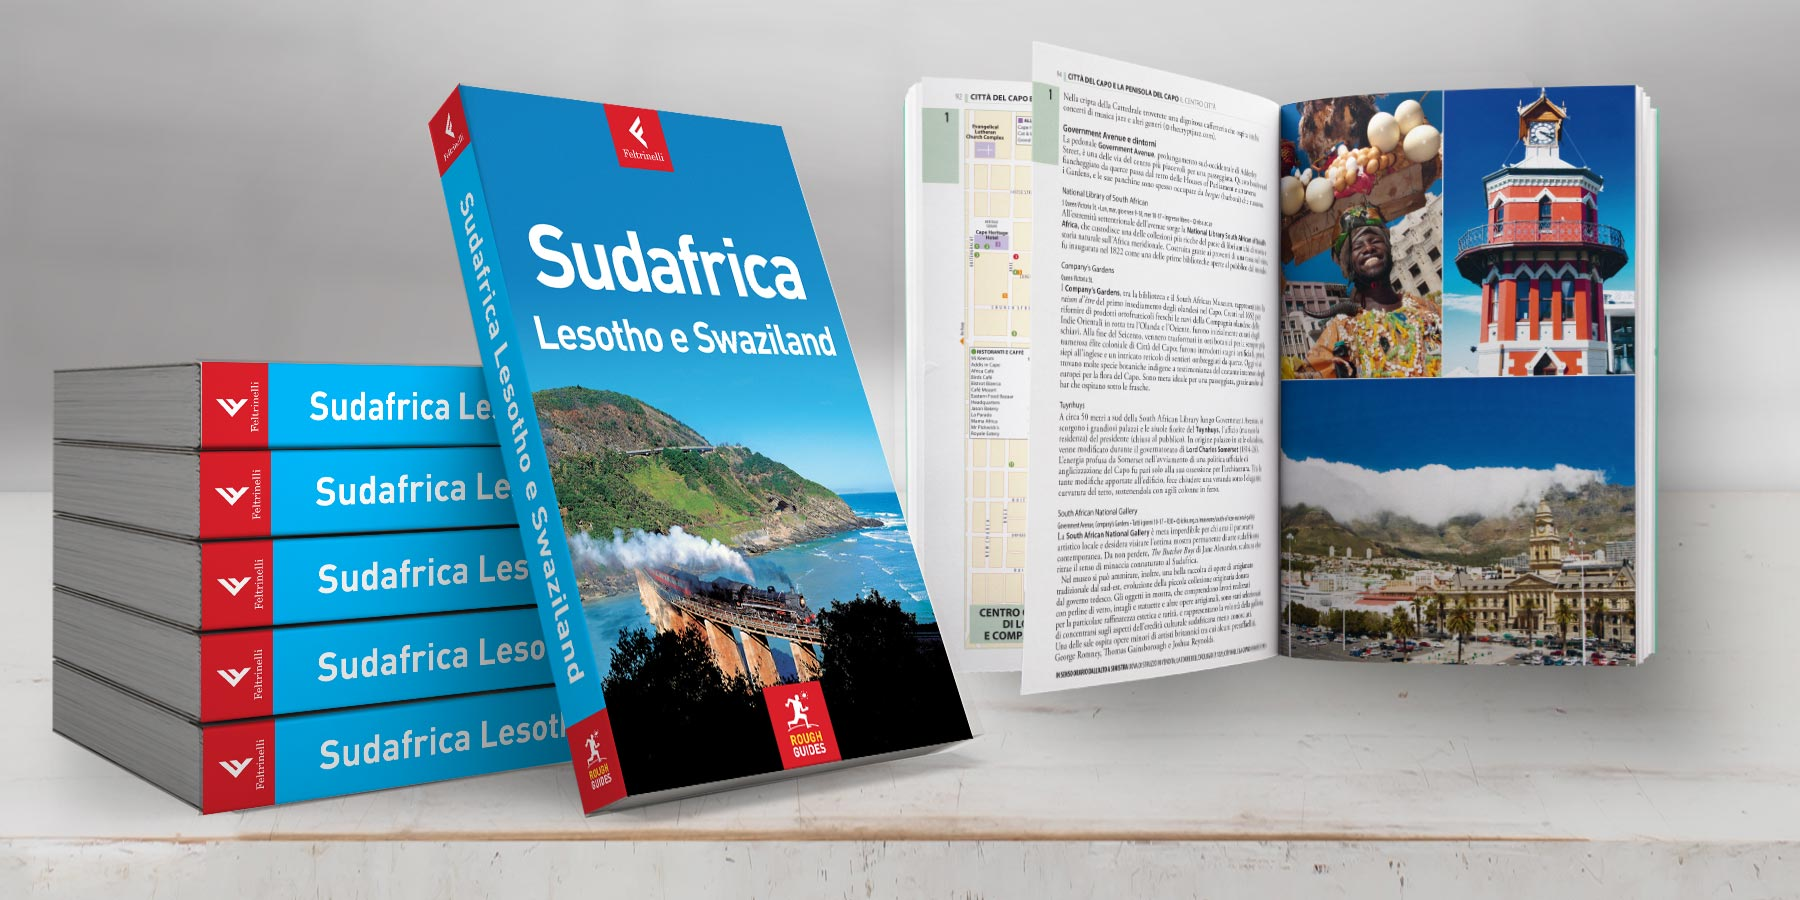 gruida turistica rough guide, Sudafrica